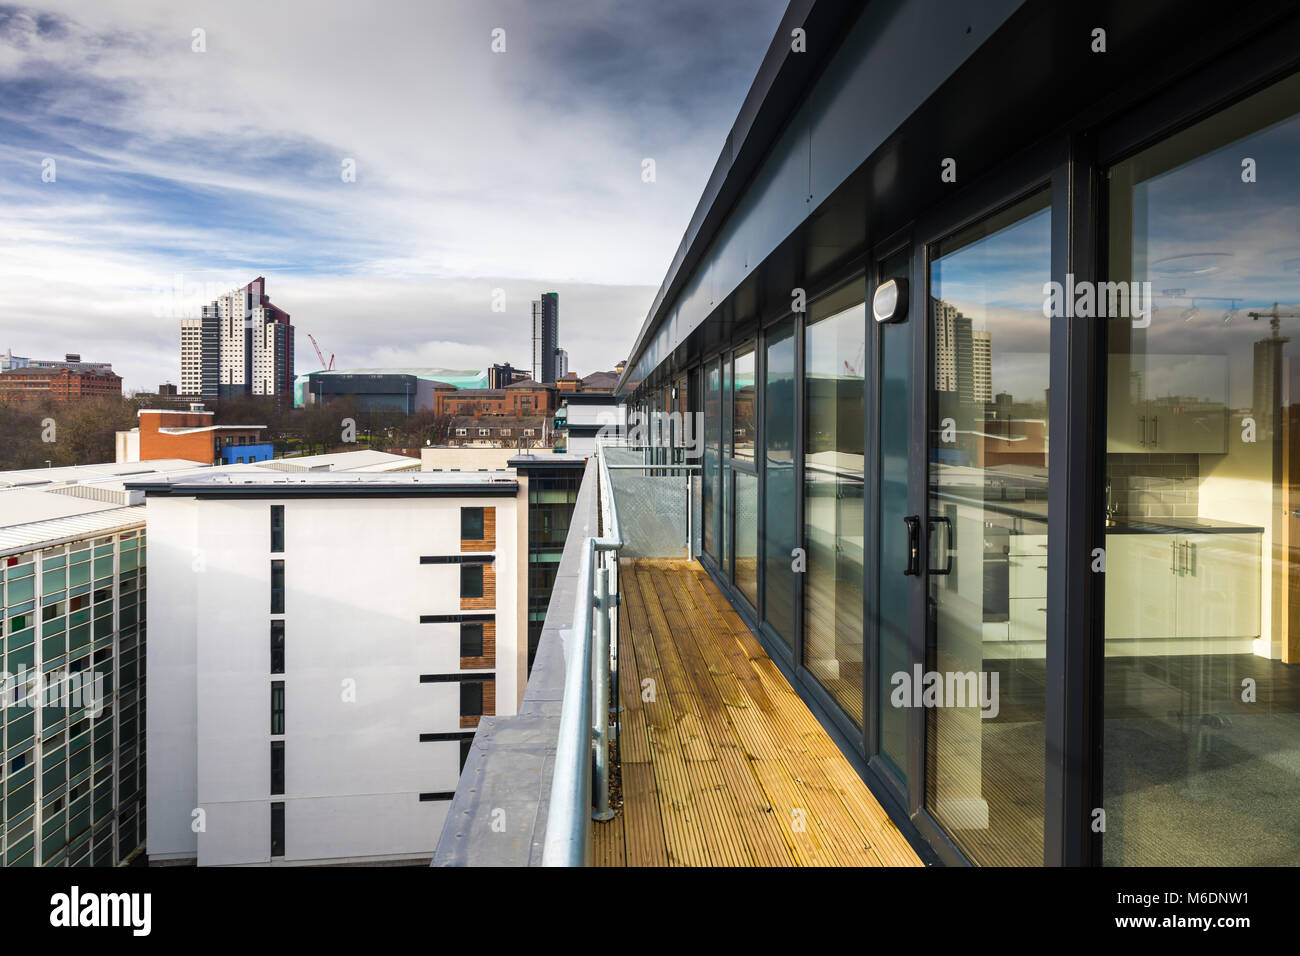 New Property Development Projects On Skinner Lane Leeds. Changing The Leeds Skyline. - Stock Image